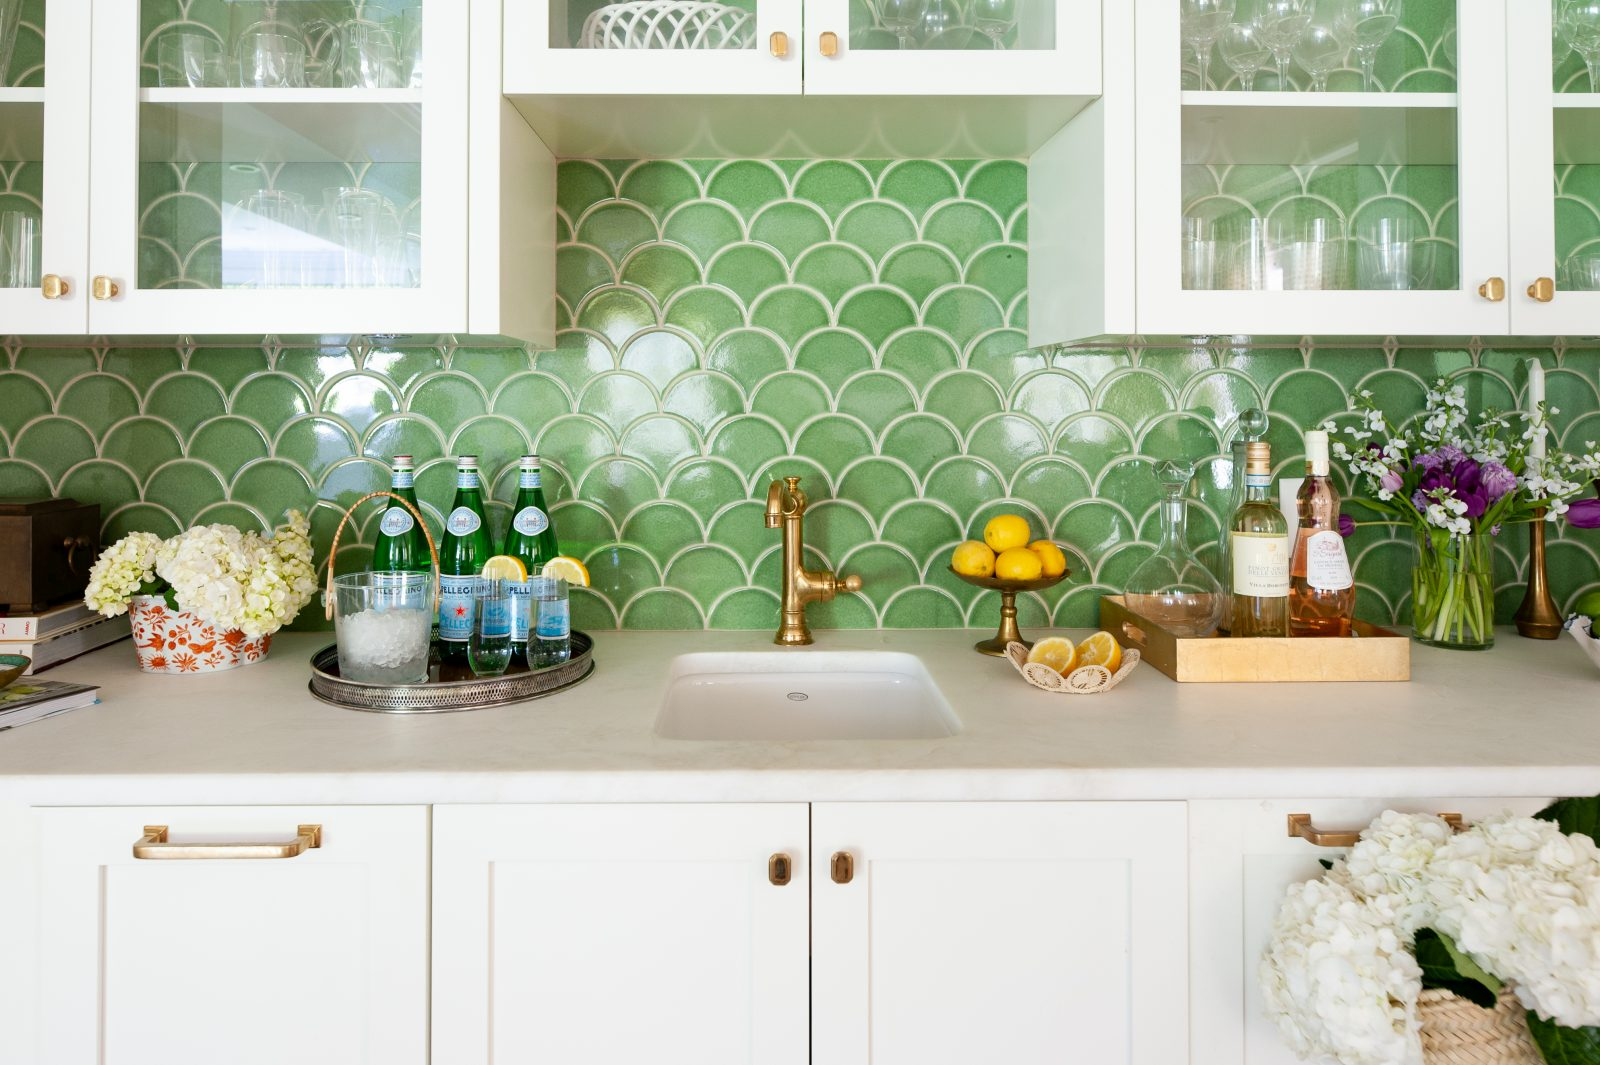 Green scale backsplash. White cabinets, gold accent colors.